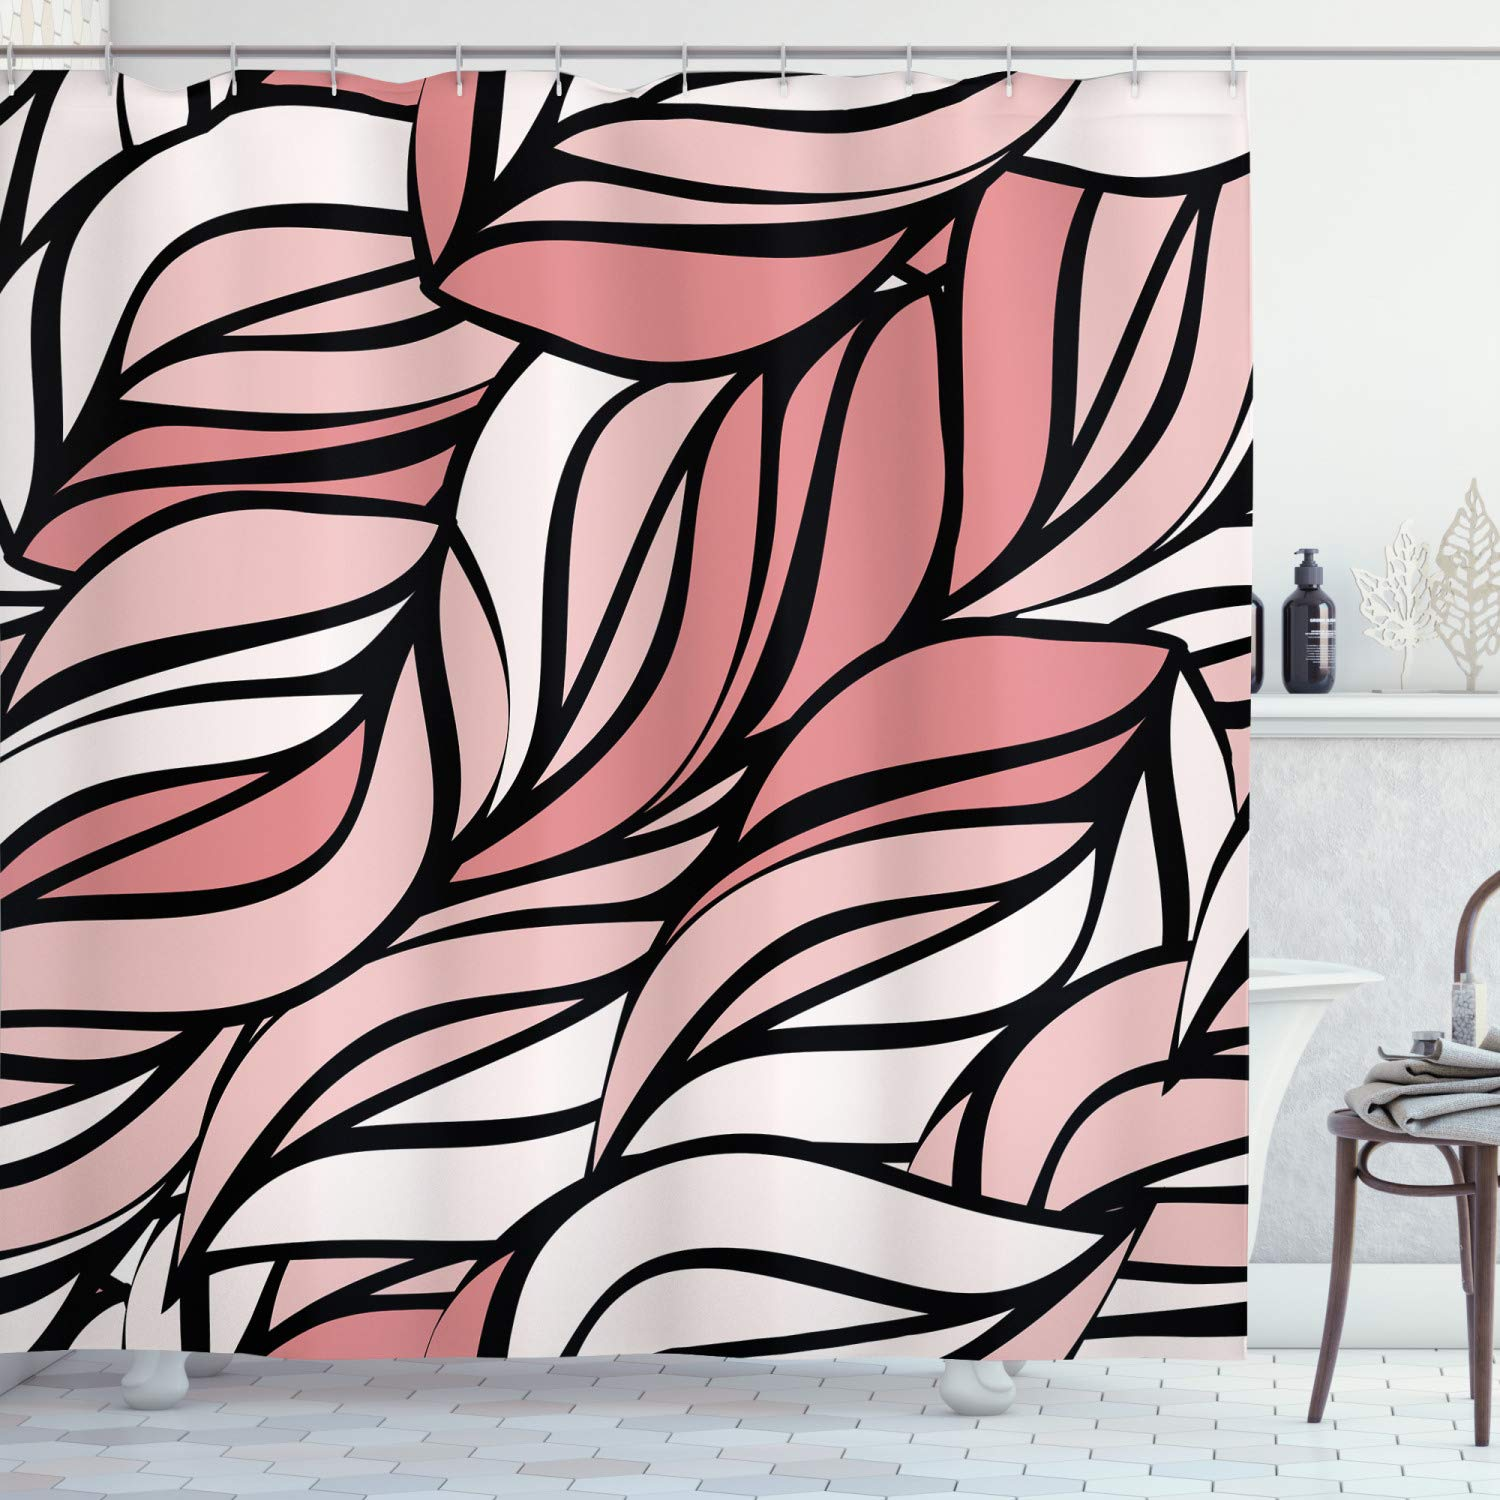 """Ambesonne Coral Shower Curtain, Digital Curving Mix Twisted Forms with Tangled Lines Knotty Color Illustration Image Print, Cloth Fabric Bathroom Decor Set with Hooks, 70"""" Long, Pink"""